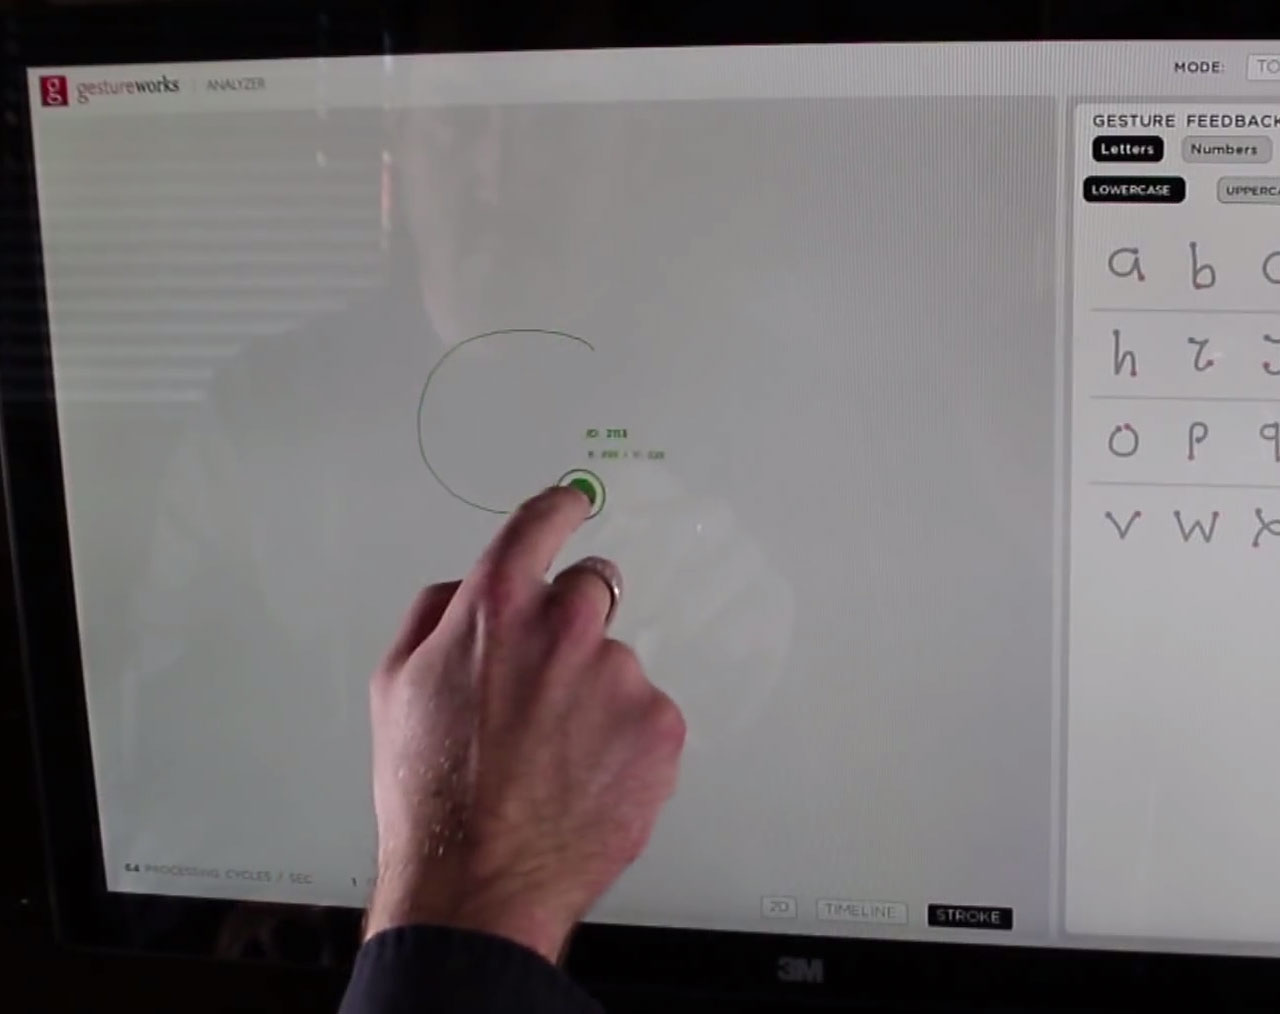 Image for the post: 'Gestureworks Core Multitouch & HCI Framework – Available February 13th (video)'